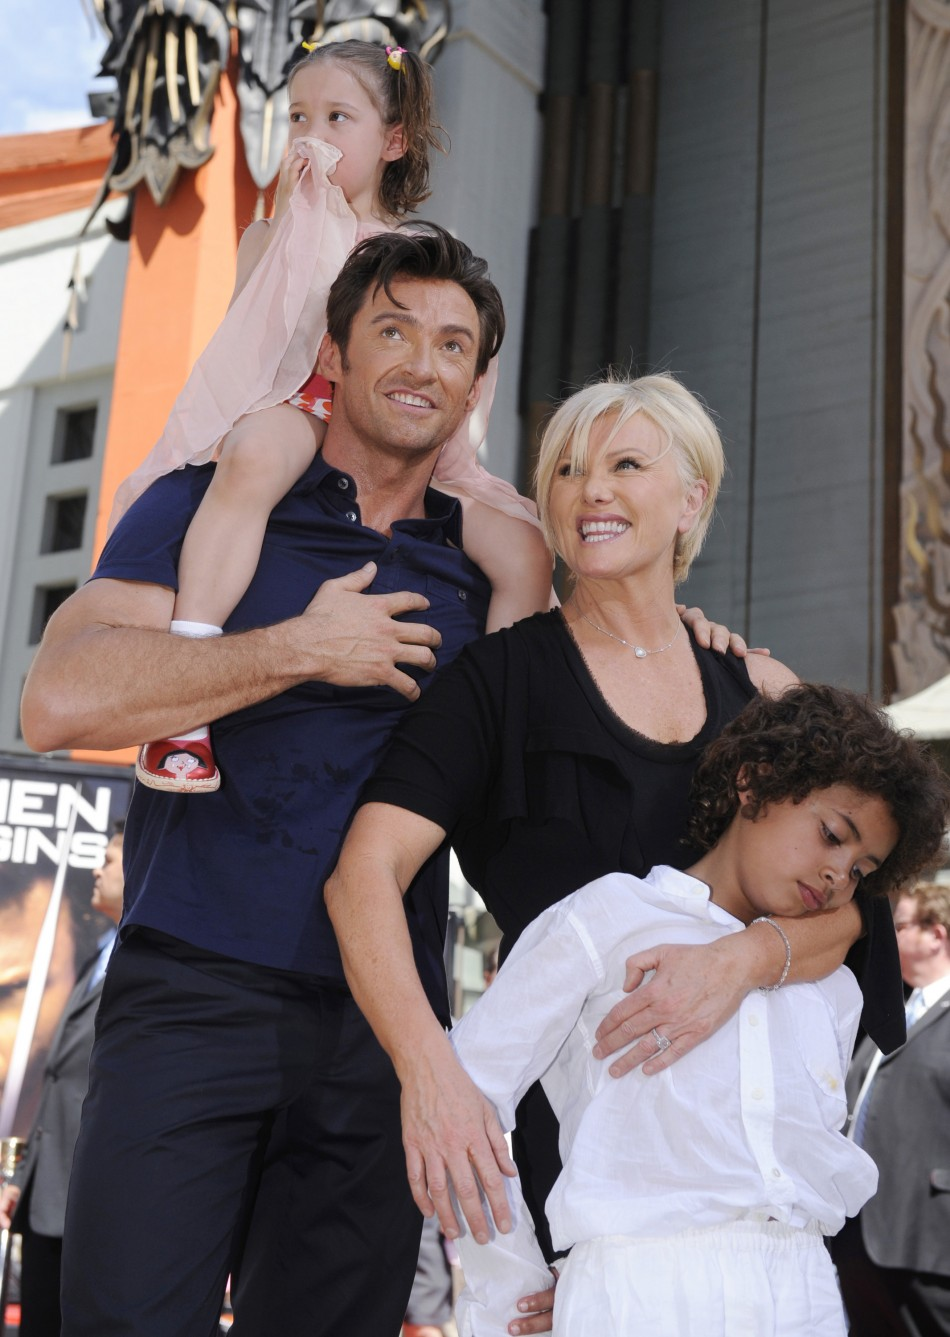 Family photo of the actor, married to Deborra-Lee Furness, famous for Wolverine & X-Men.